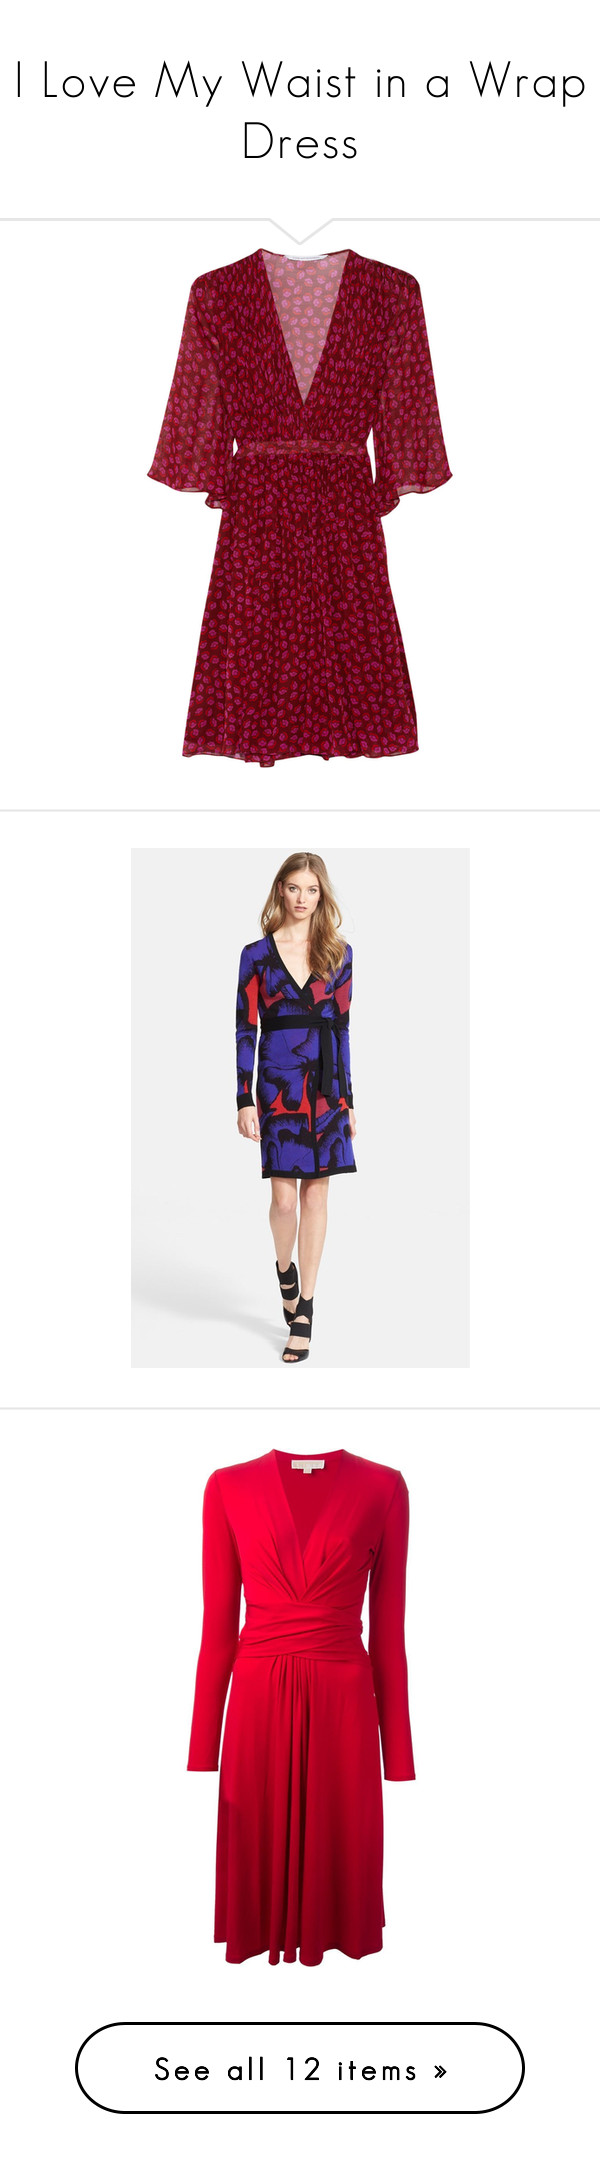 """""""I Love My Waist in a Wrap Dress"""" by polyvore-editorial ❤ liked on Polyvore featuring wrapdress, lovemylook, Diane Von Furstenberg, Michael Kors, Westward Leaning, dresses, red dress, diane von furstenberg, red wrap dress and diane von furstenberg dresses"""